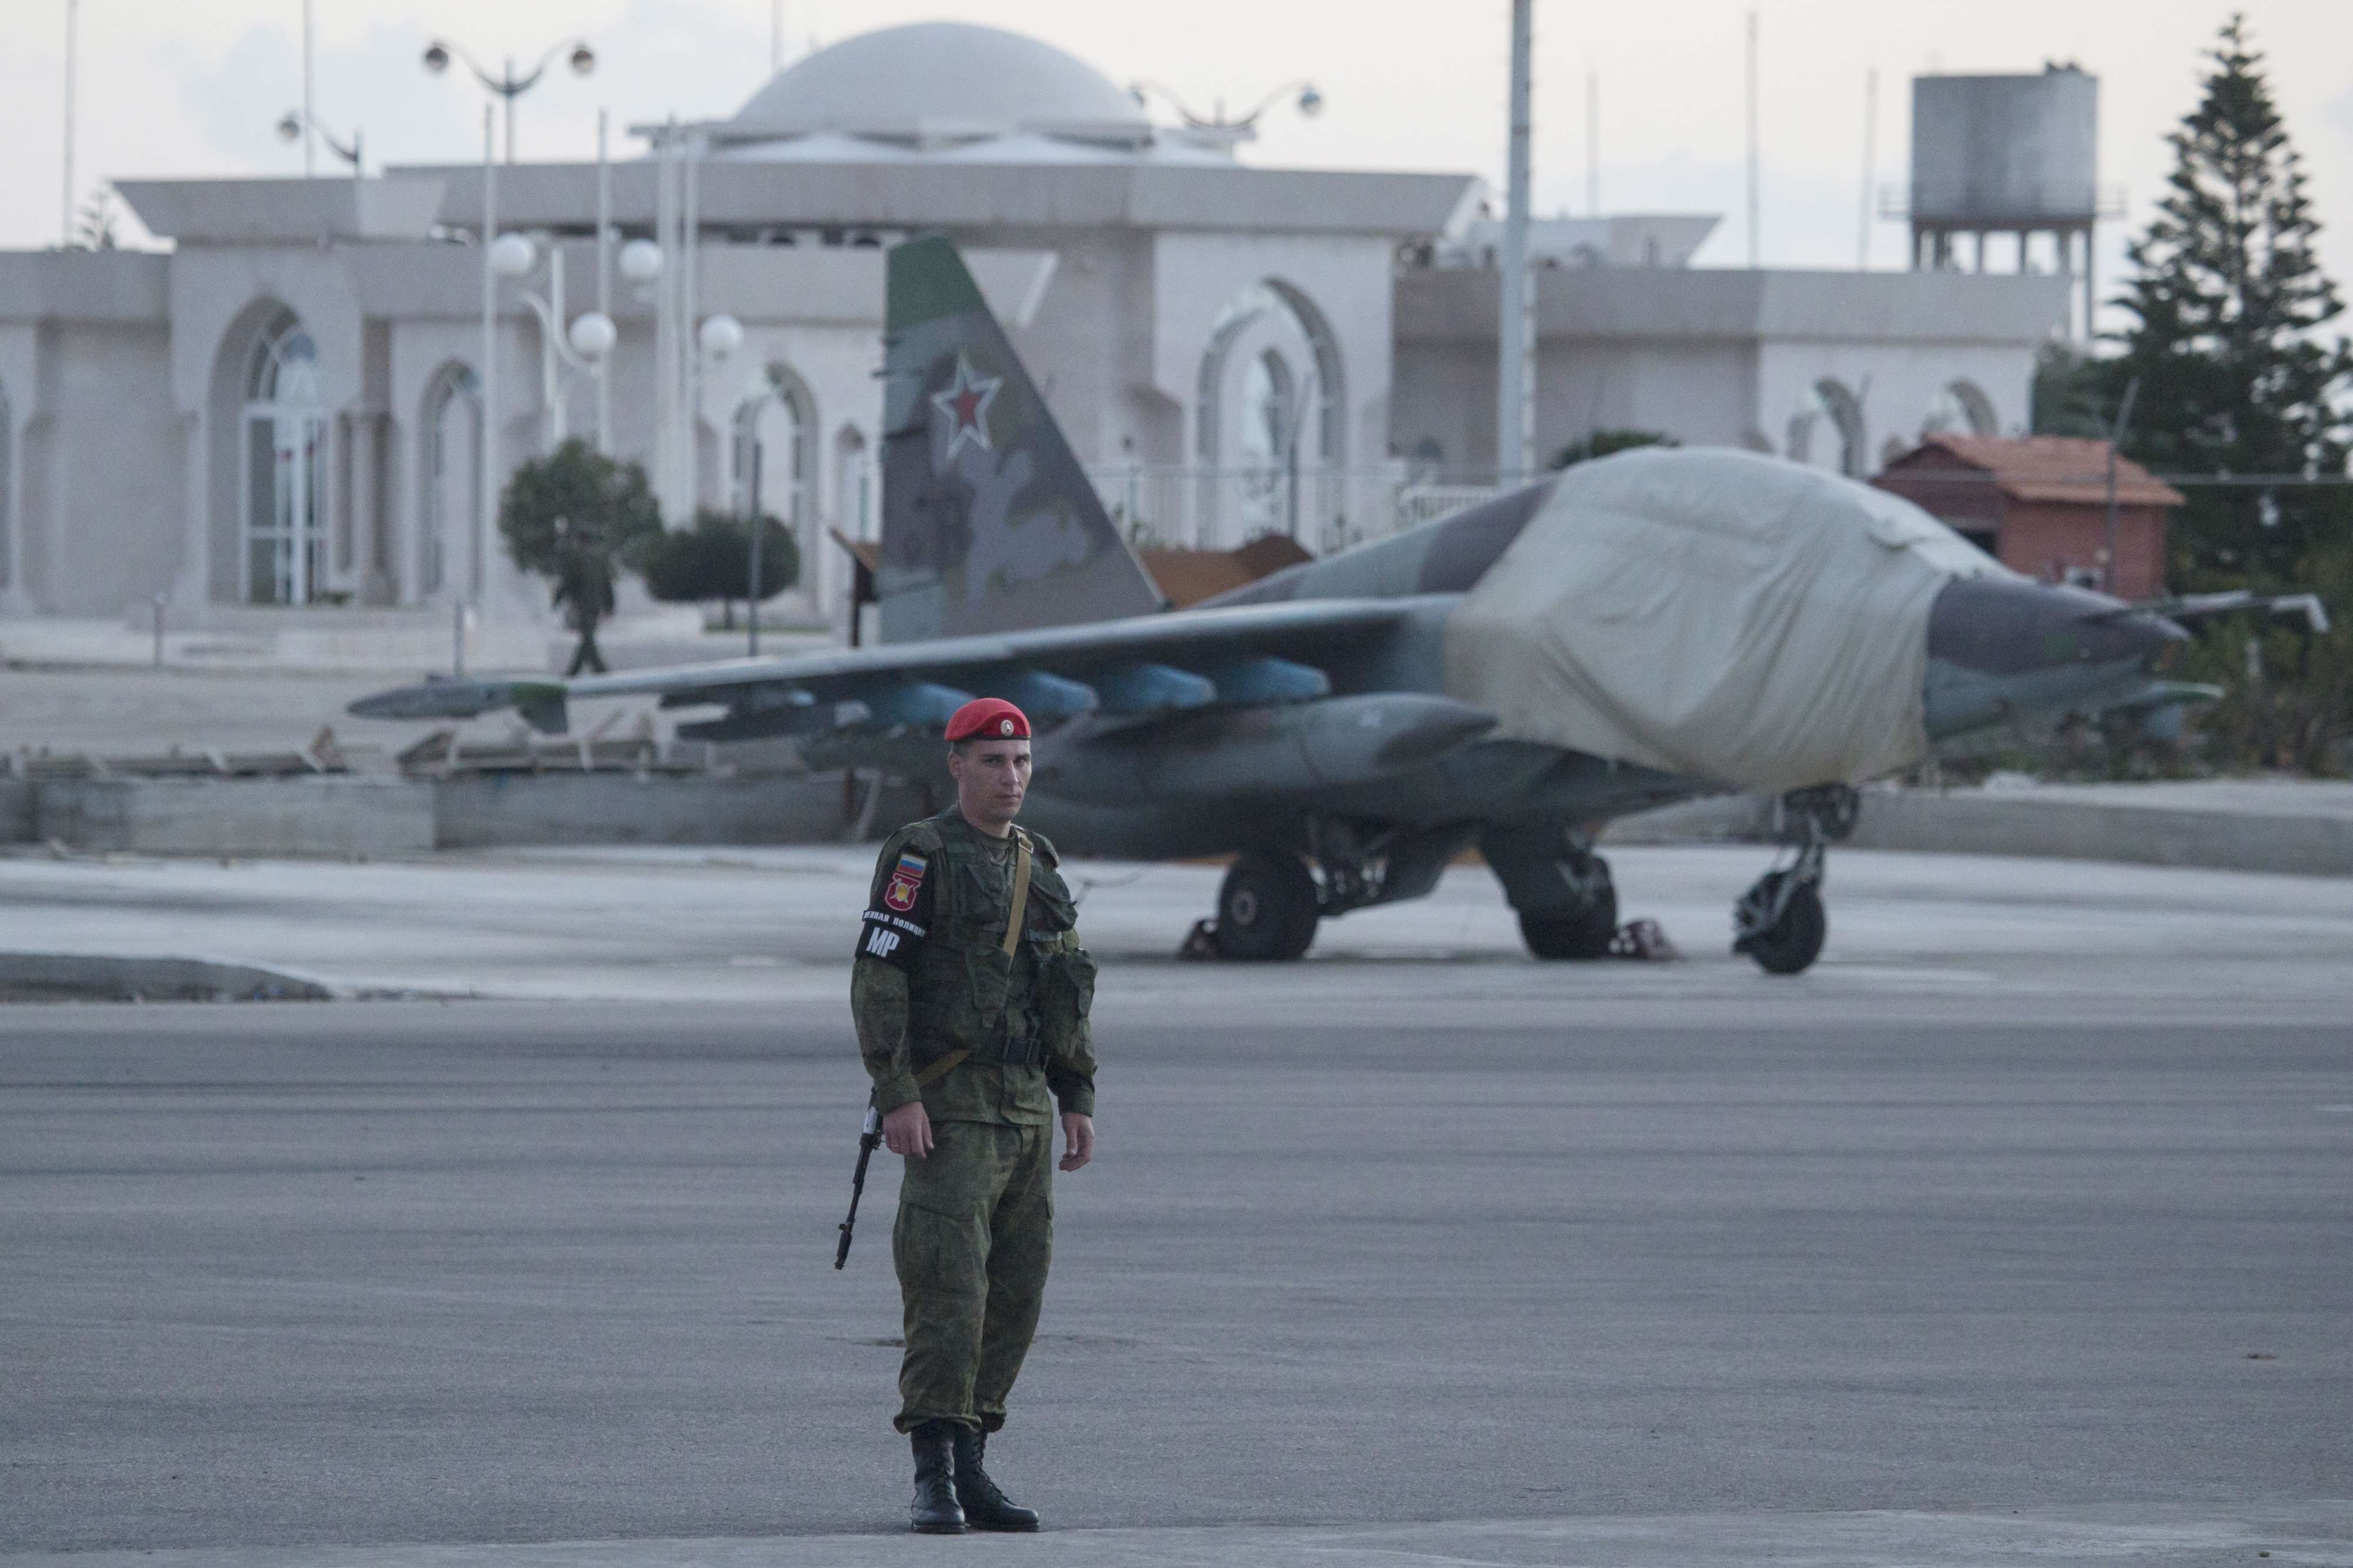 A Russian soldier stands guard as Su-25 ground attack jet is parked at Hmeimim air base in Syria. (AP)